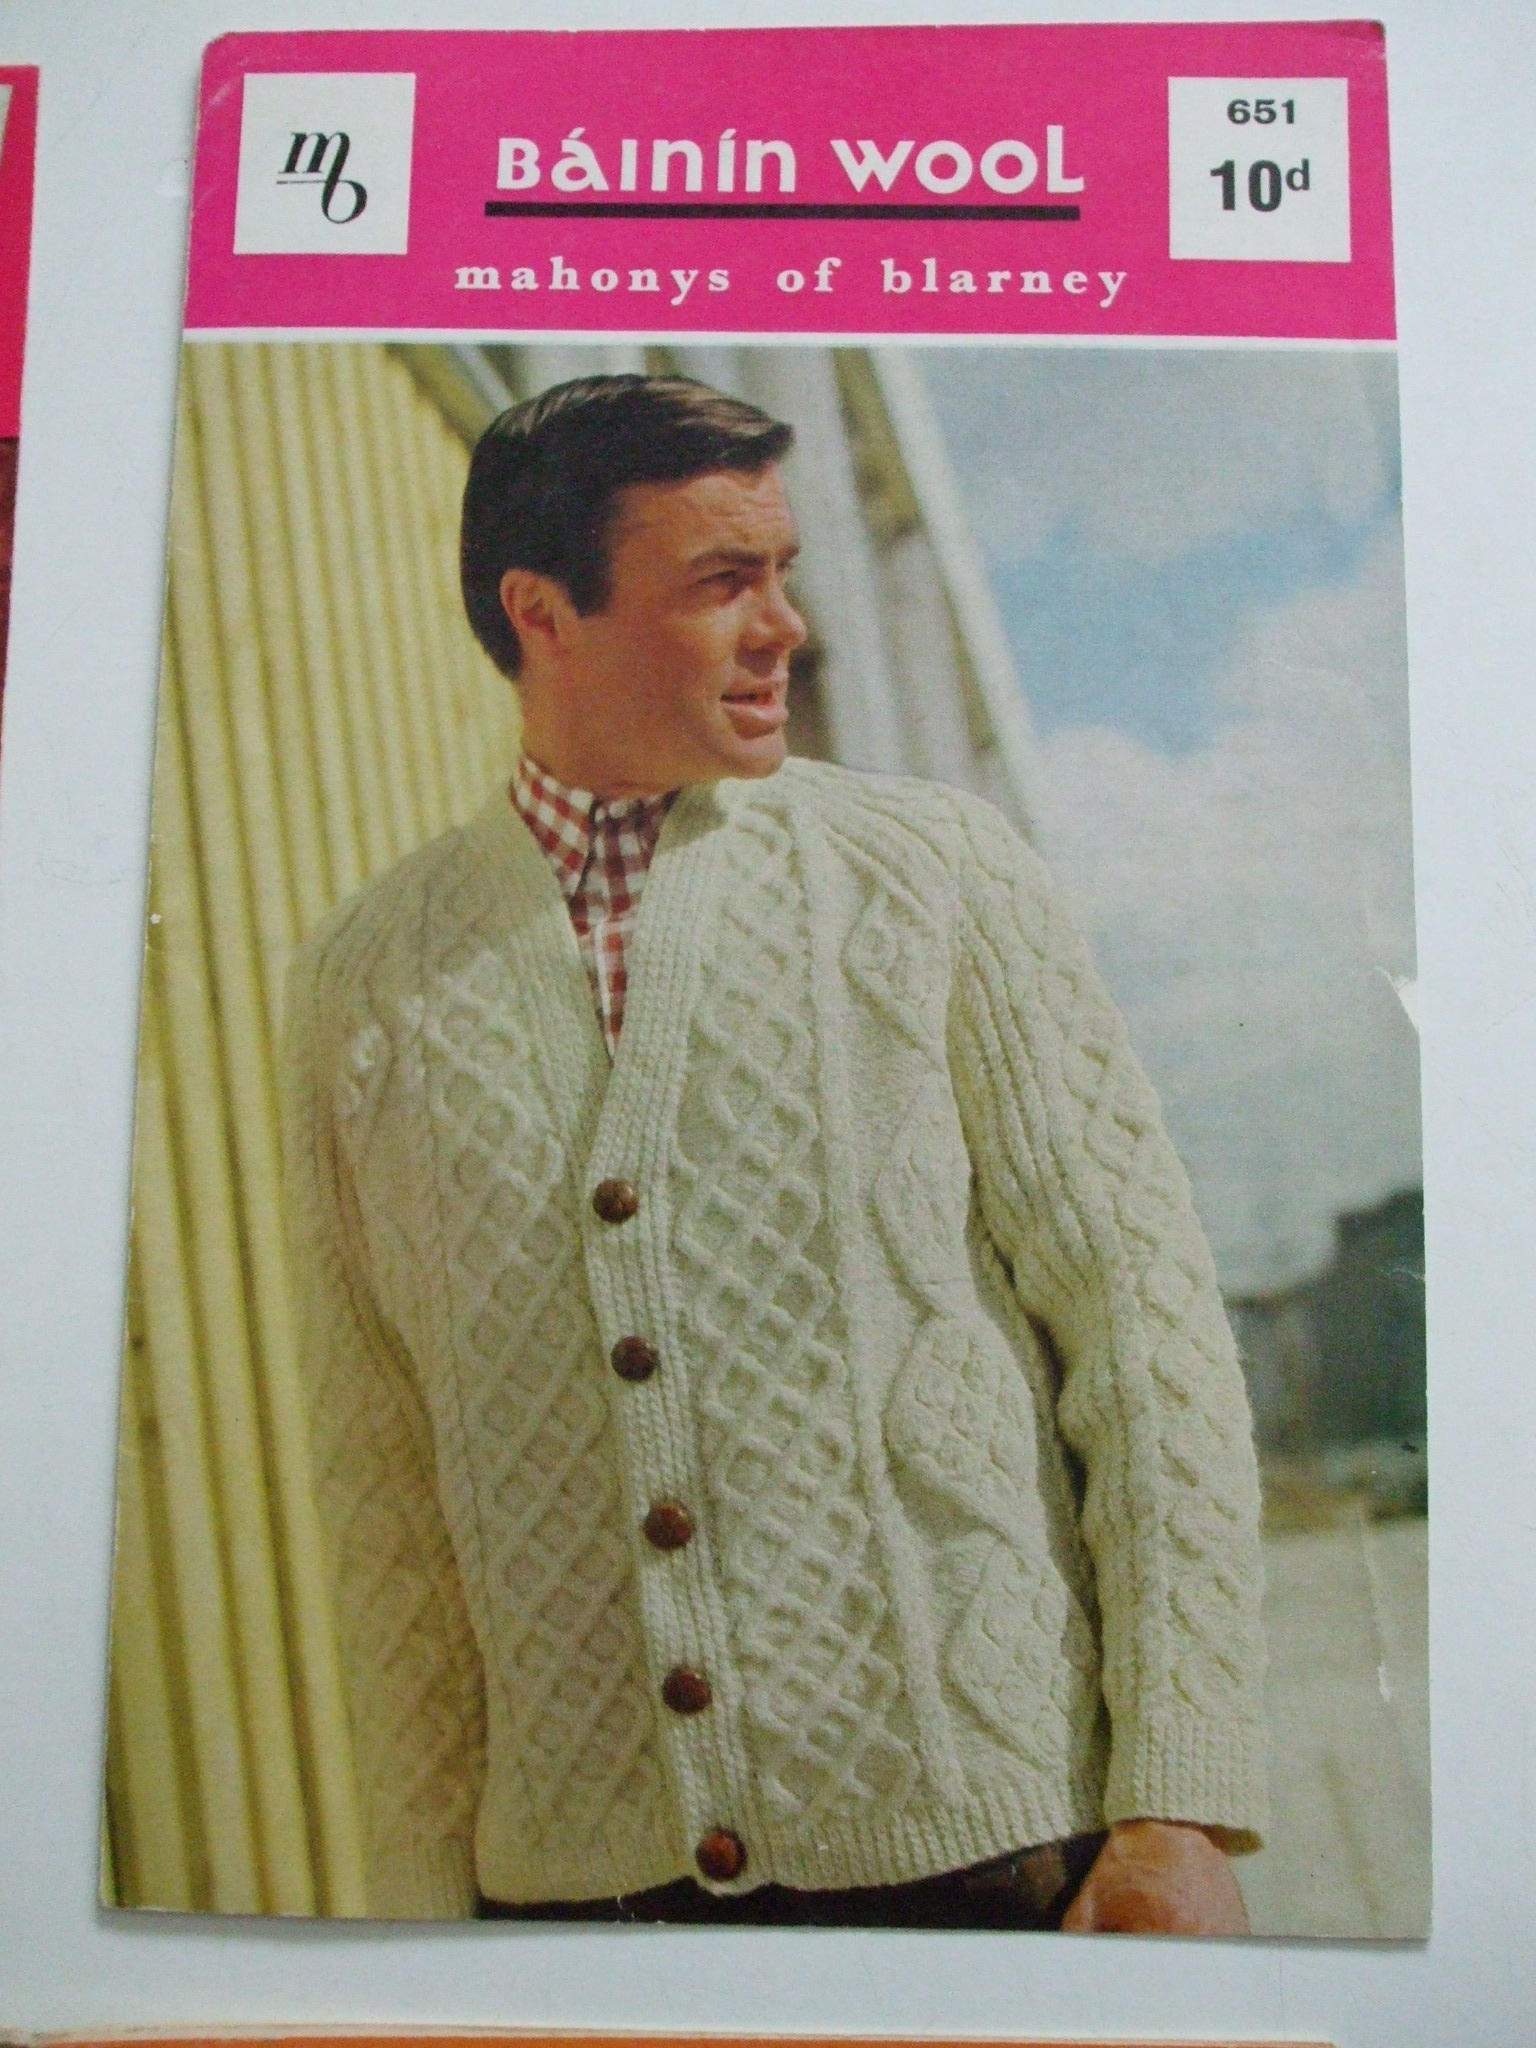 Aran Jumper Knitting Patterns Mens Aran Jacket Sweater Cardigan Knitting Pattern Mahonys Of Blarney No 651